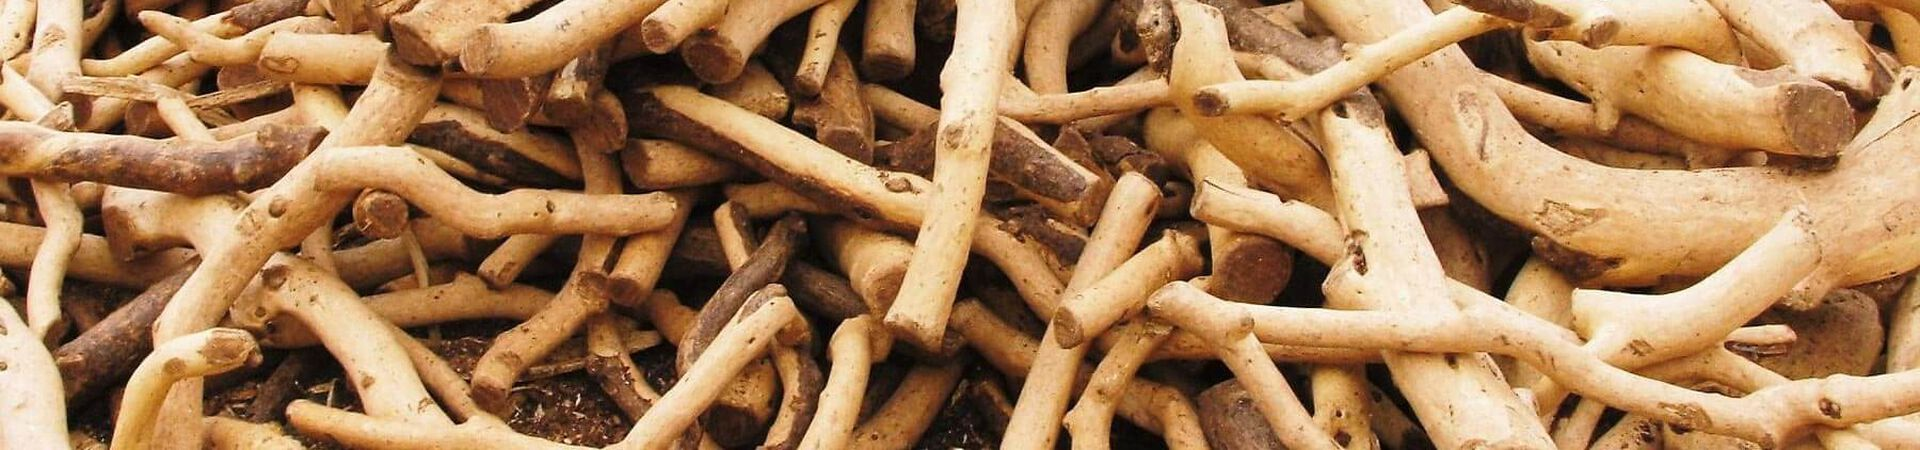 Banner - Where Does Sandalwood Come From?